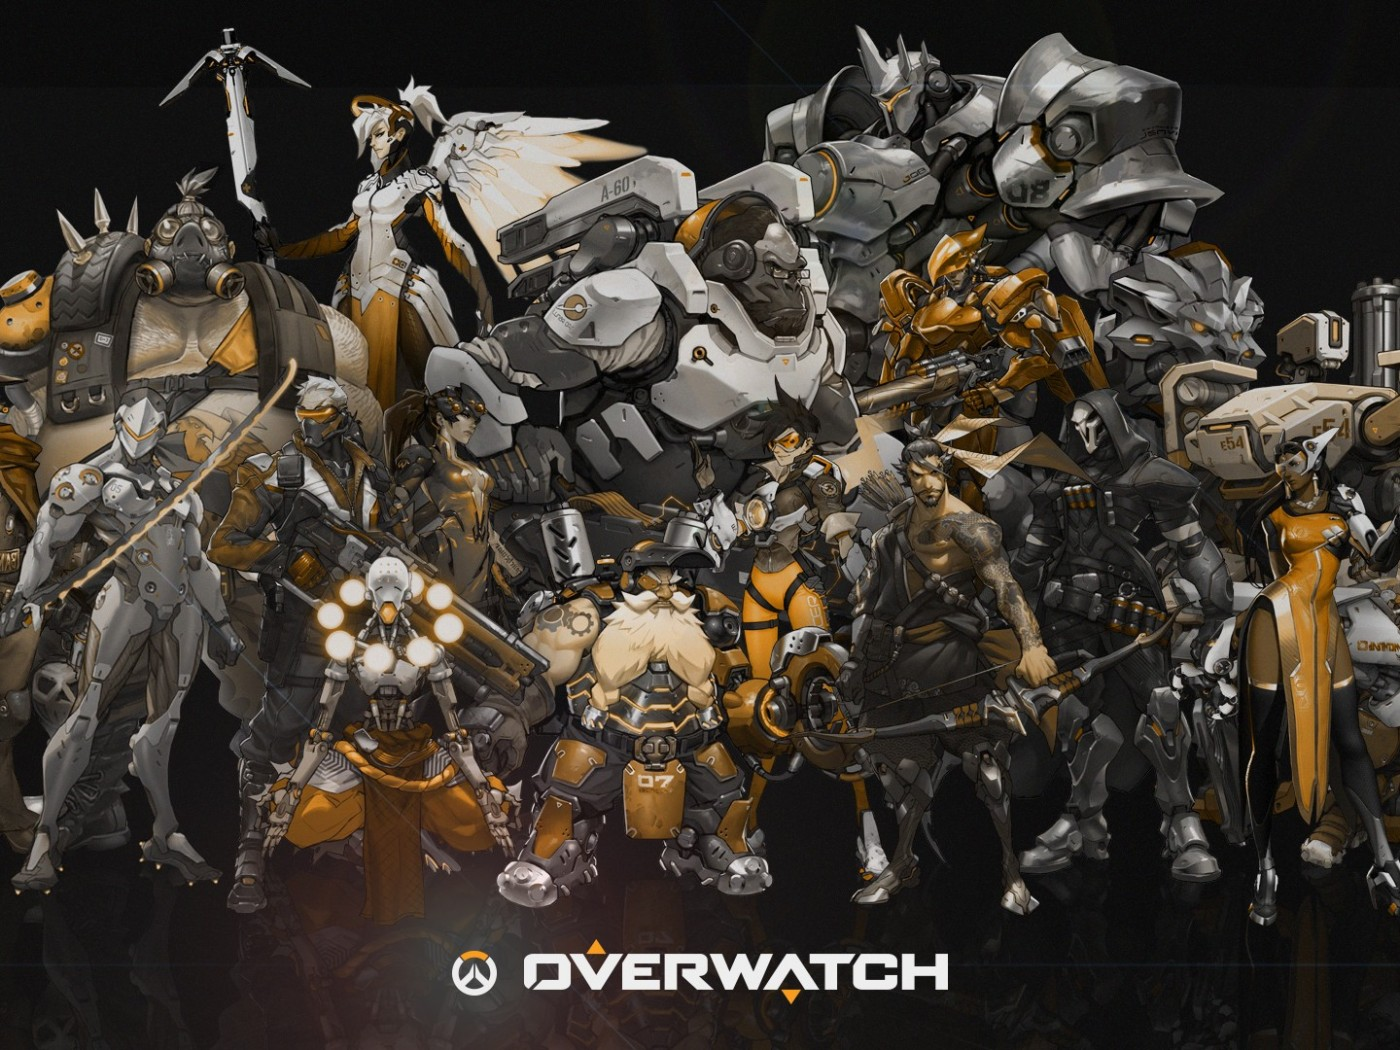 Overwatch Video Games Wallpapers HD Desktop and Mobile Backgrounds 1400x1050